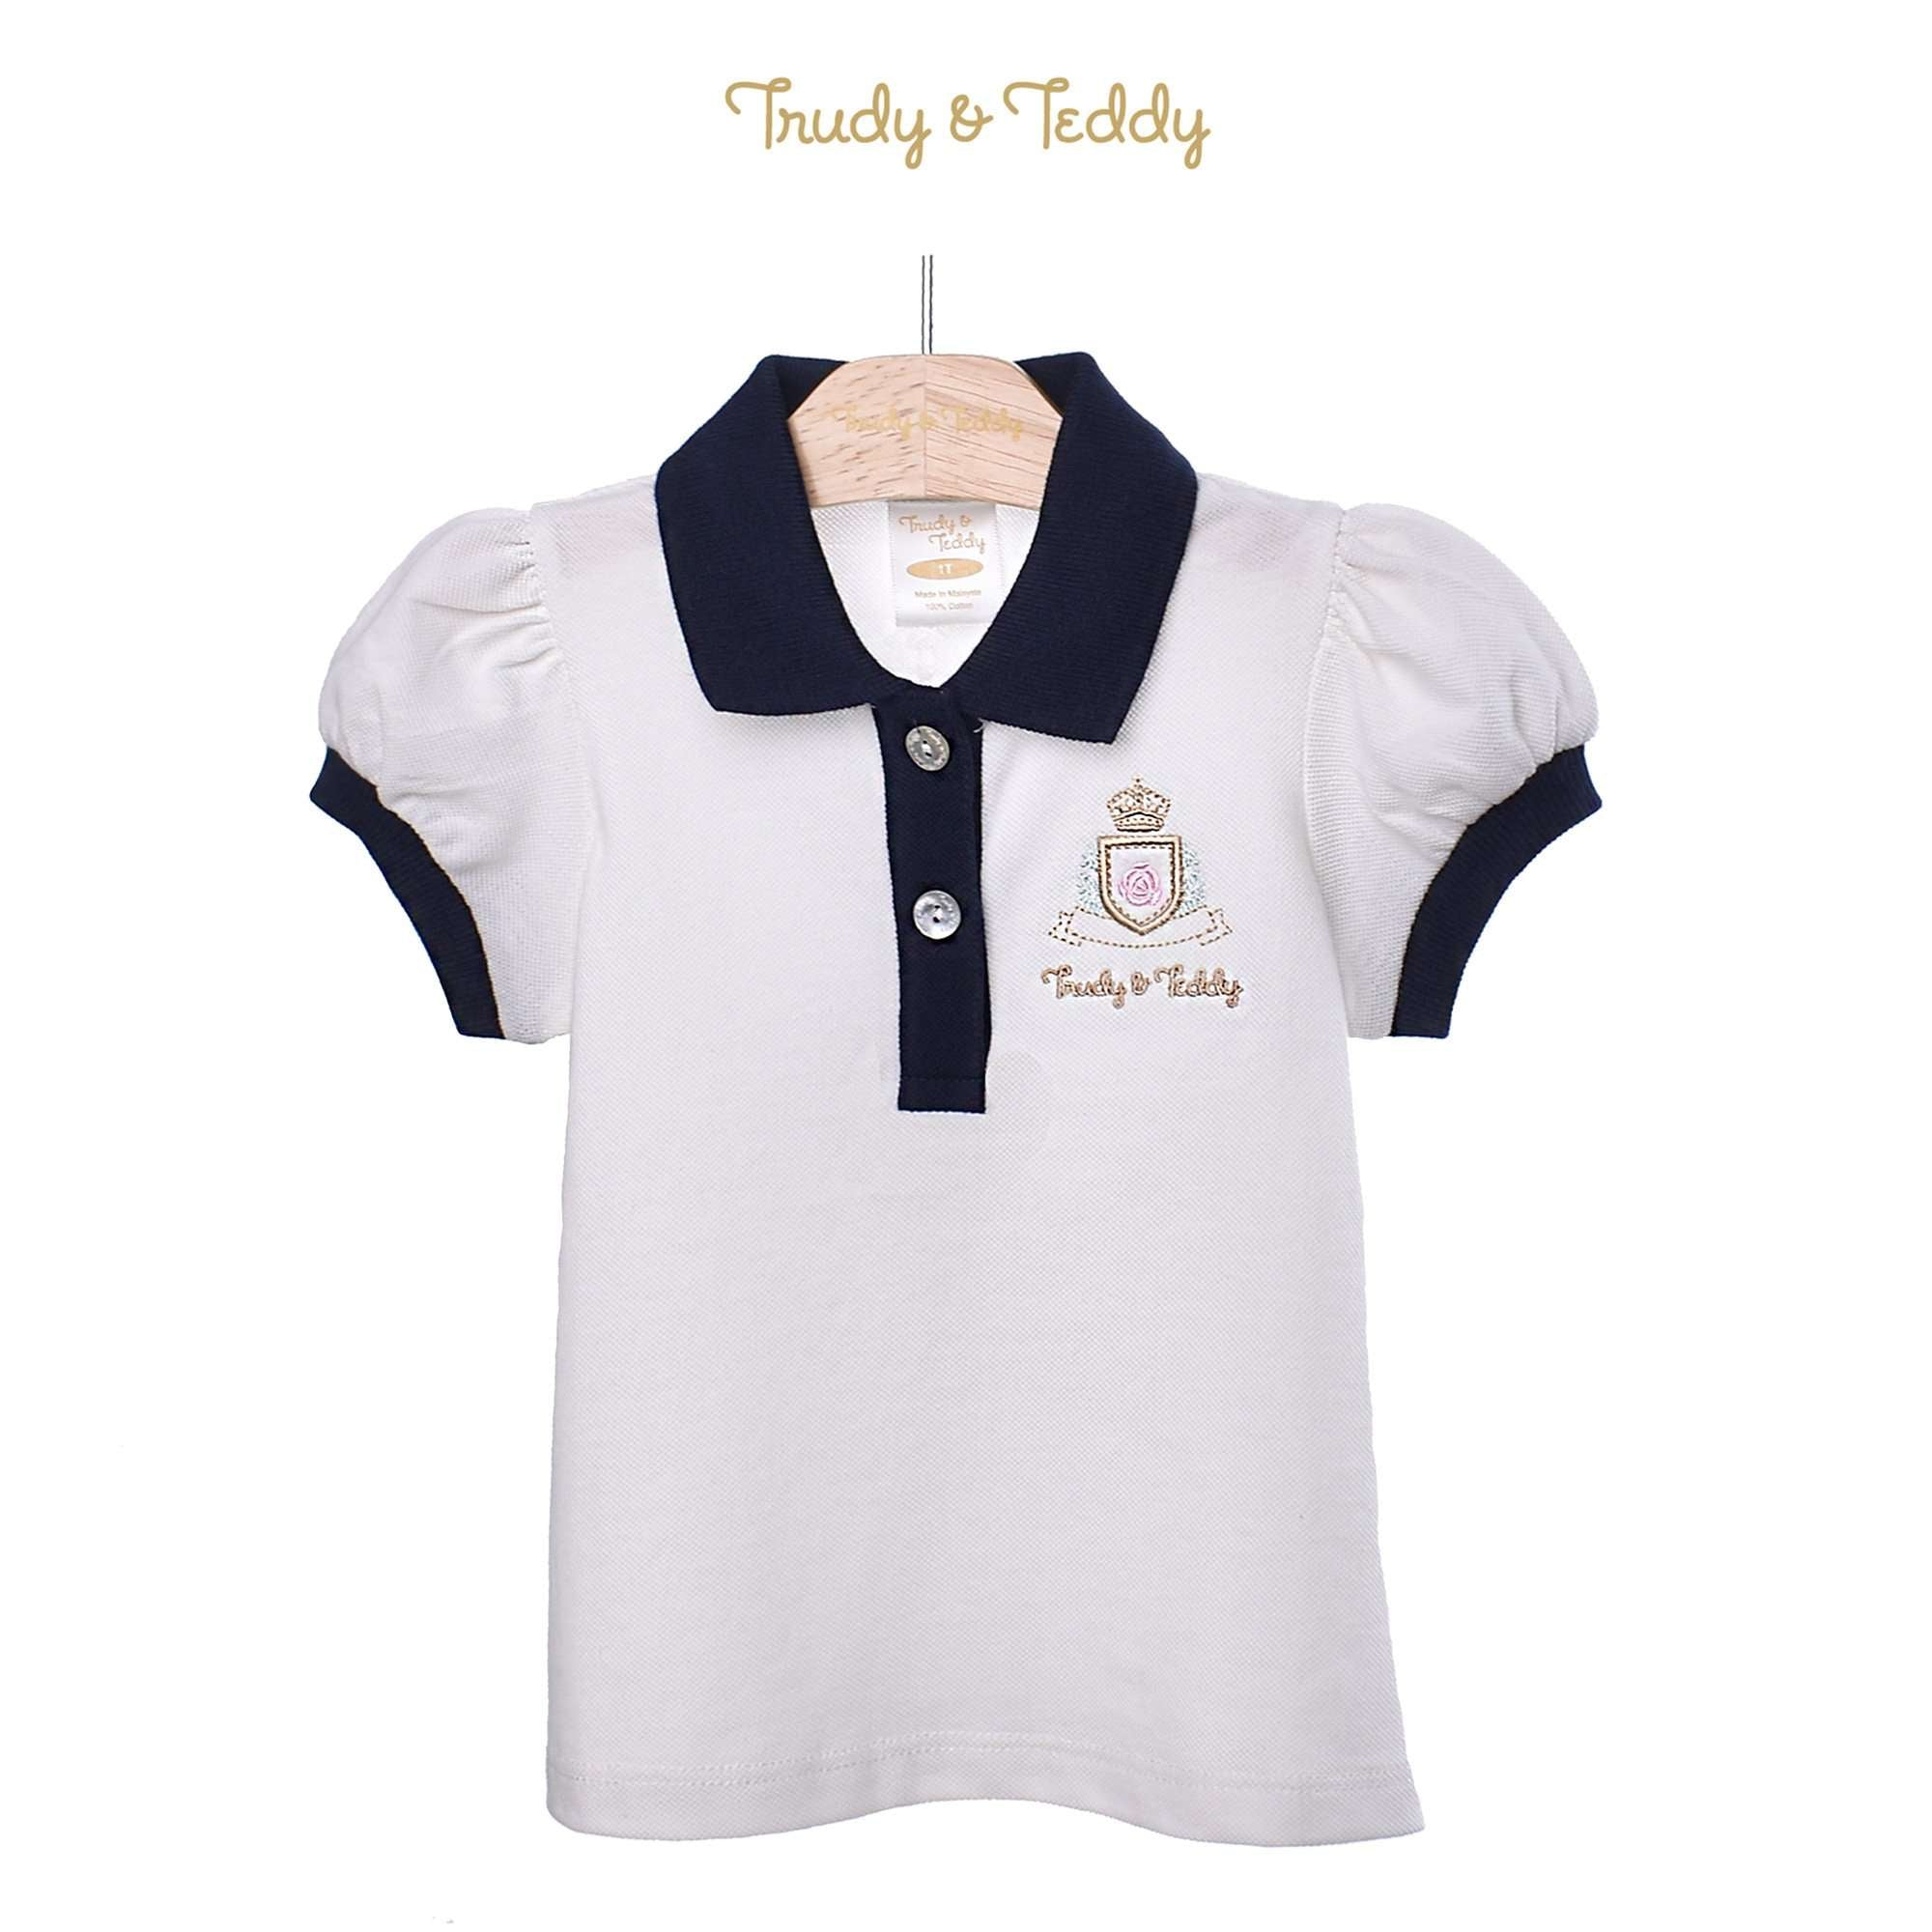 Trudy & Teddy Toddler Girl Knit Short Sleeve Collar Tee 825034-121 : Buy Trudy & Teddy online at CMG.MY